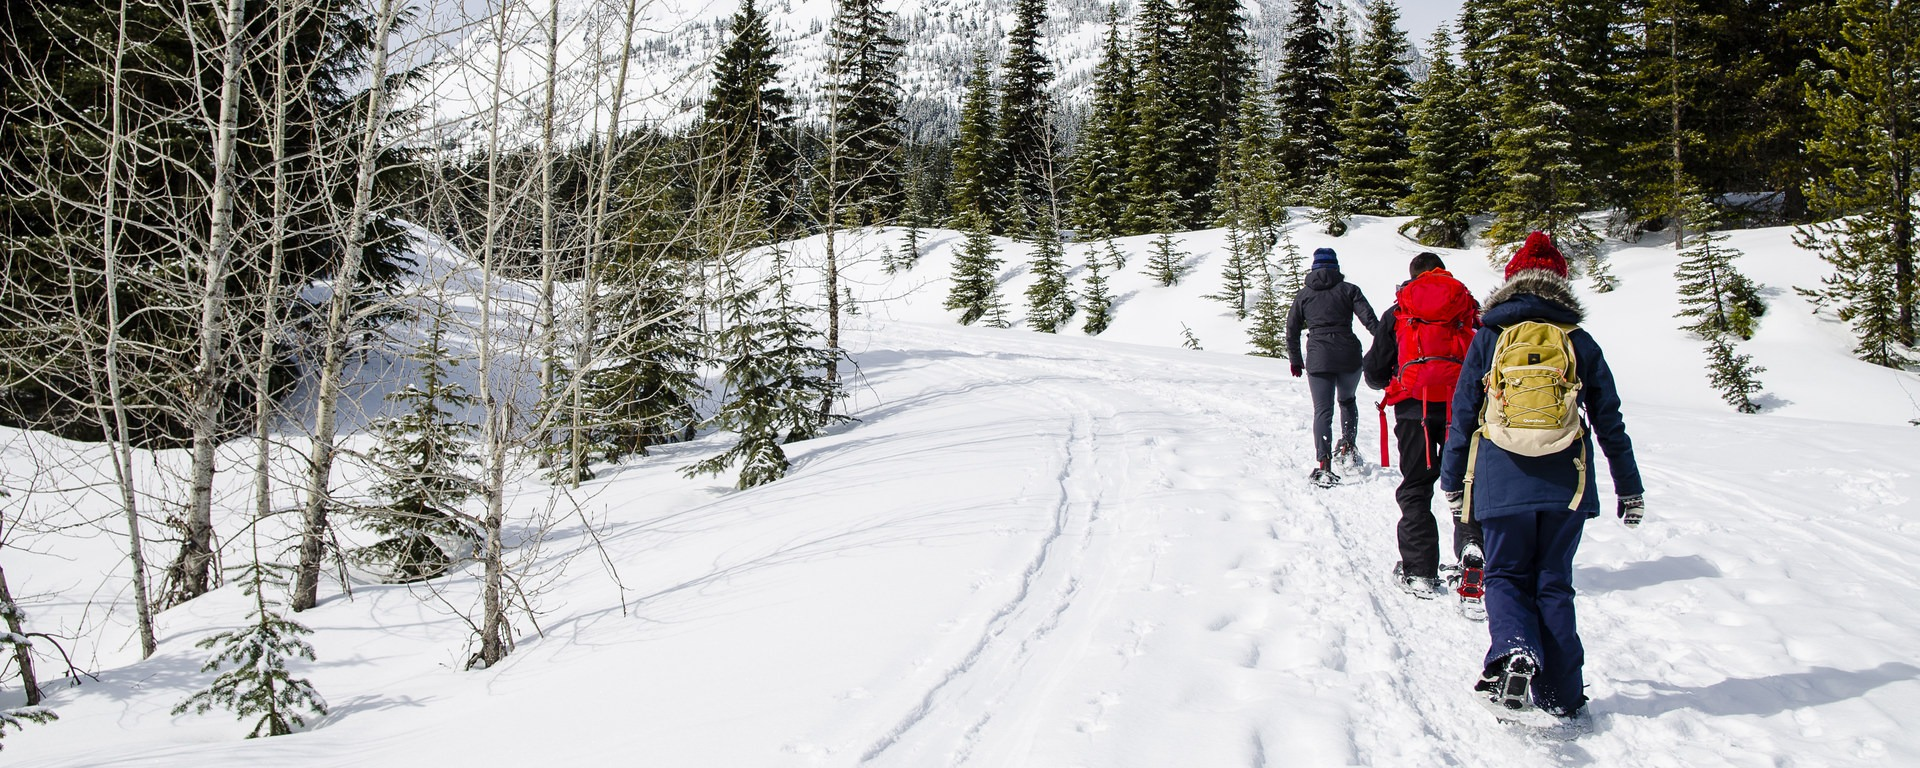 Best Rain, Snow, and Cold Weather Gear for Winter 2019 ...